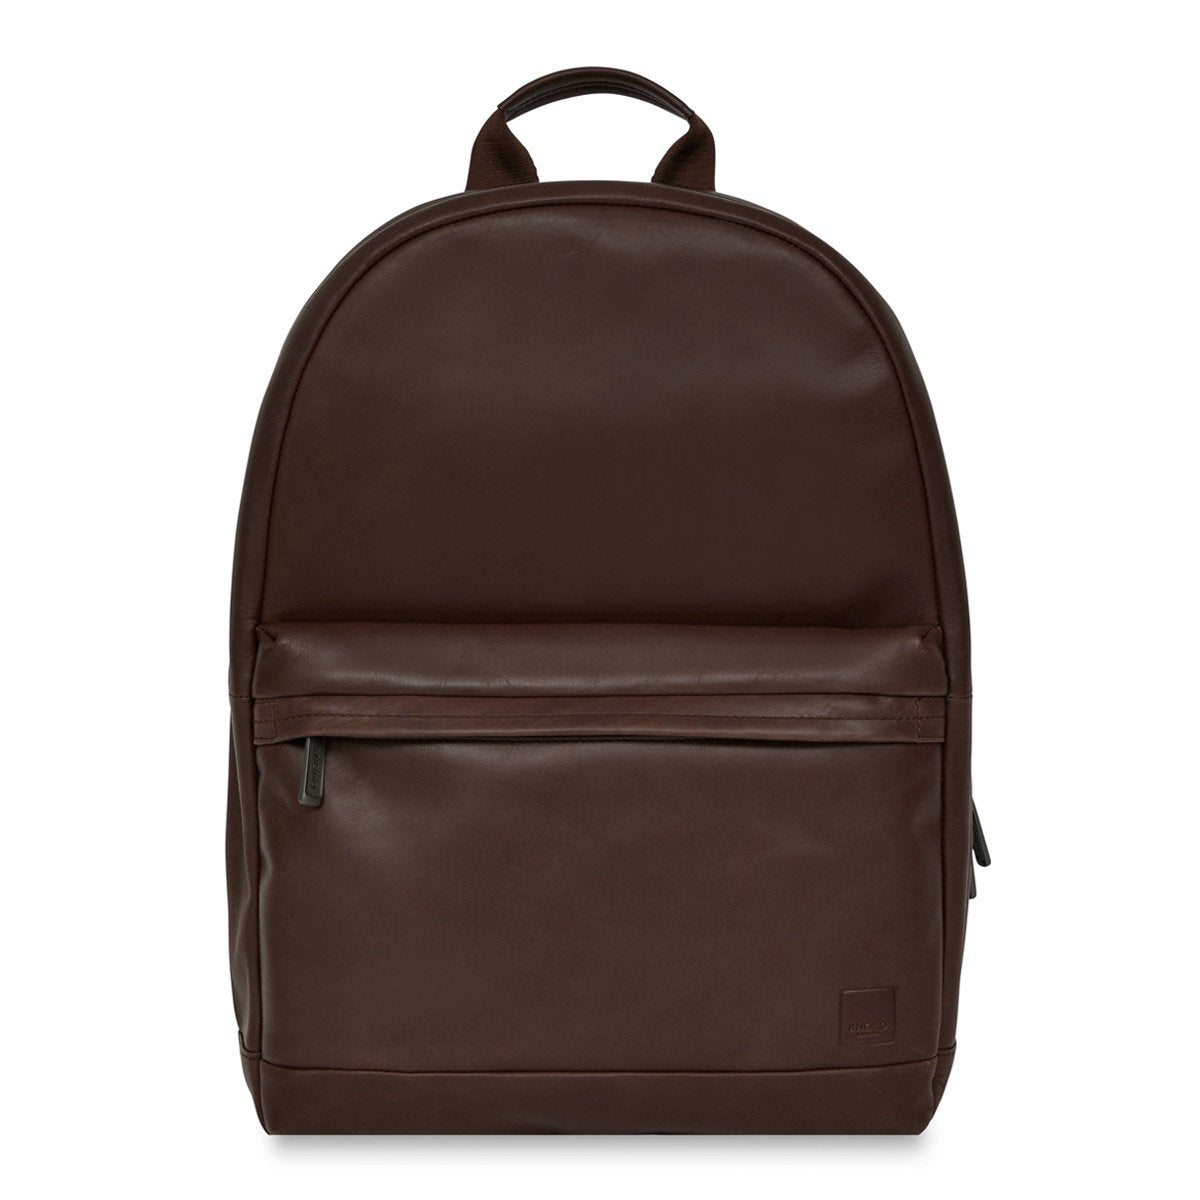 Albion backpack mens laptop 45 401 brw2 front